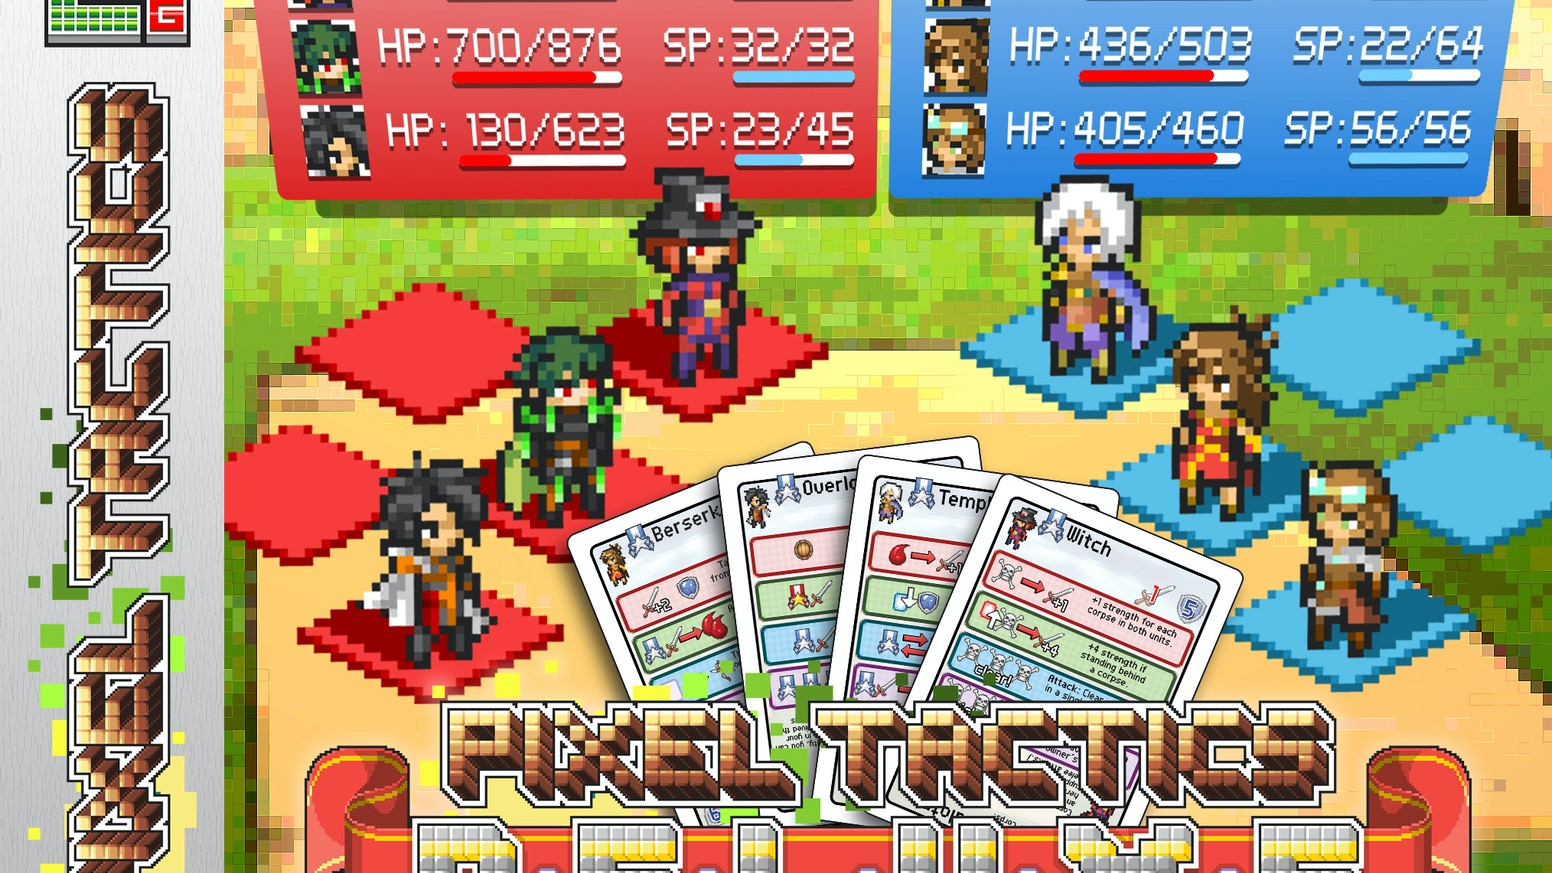 SRPG-style tactical battles, compressed into a pocket-size card game with over 140 hero classes, each with new skills!